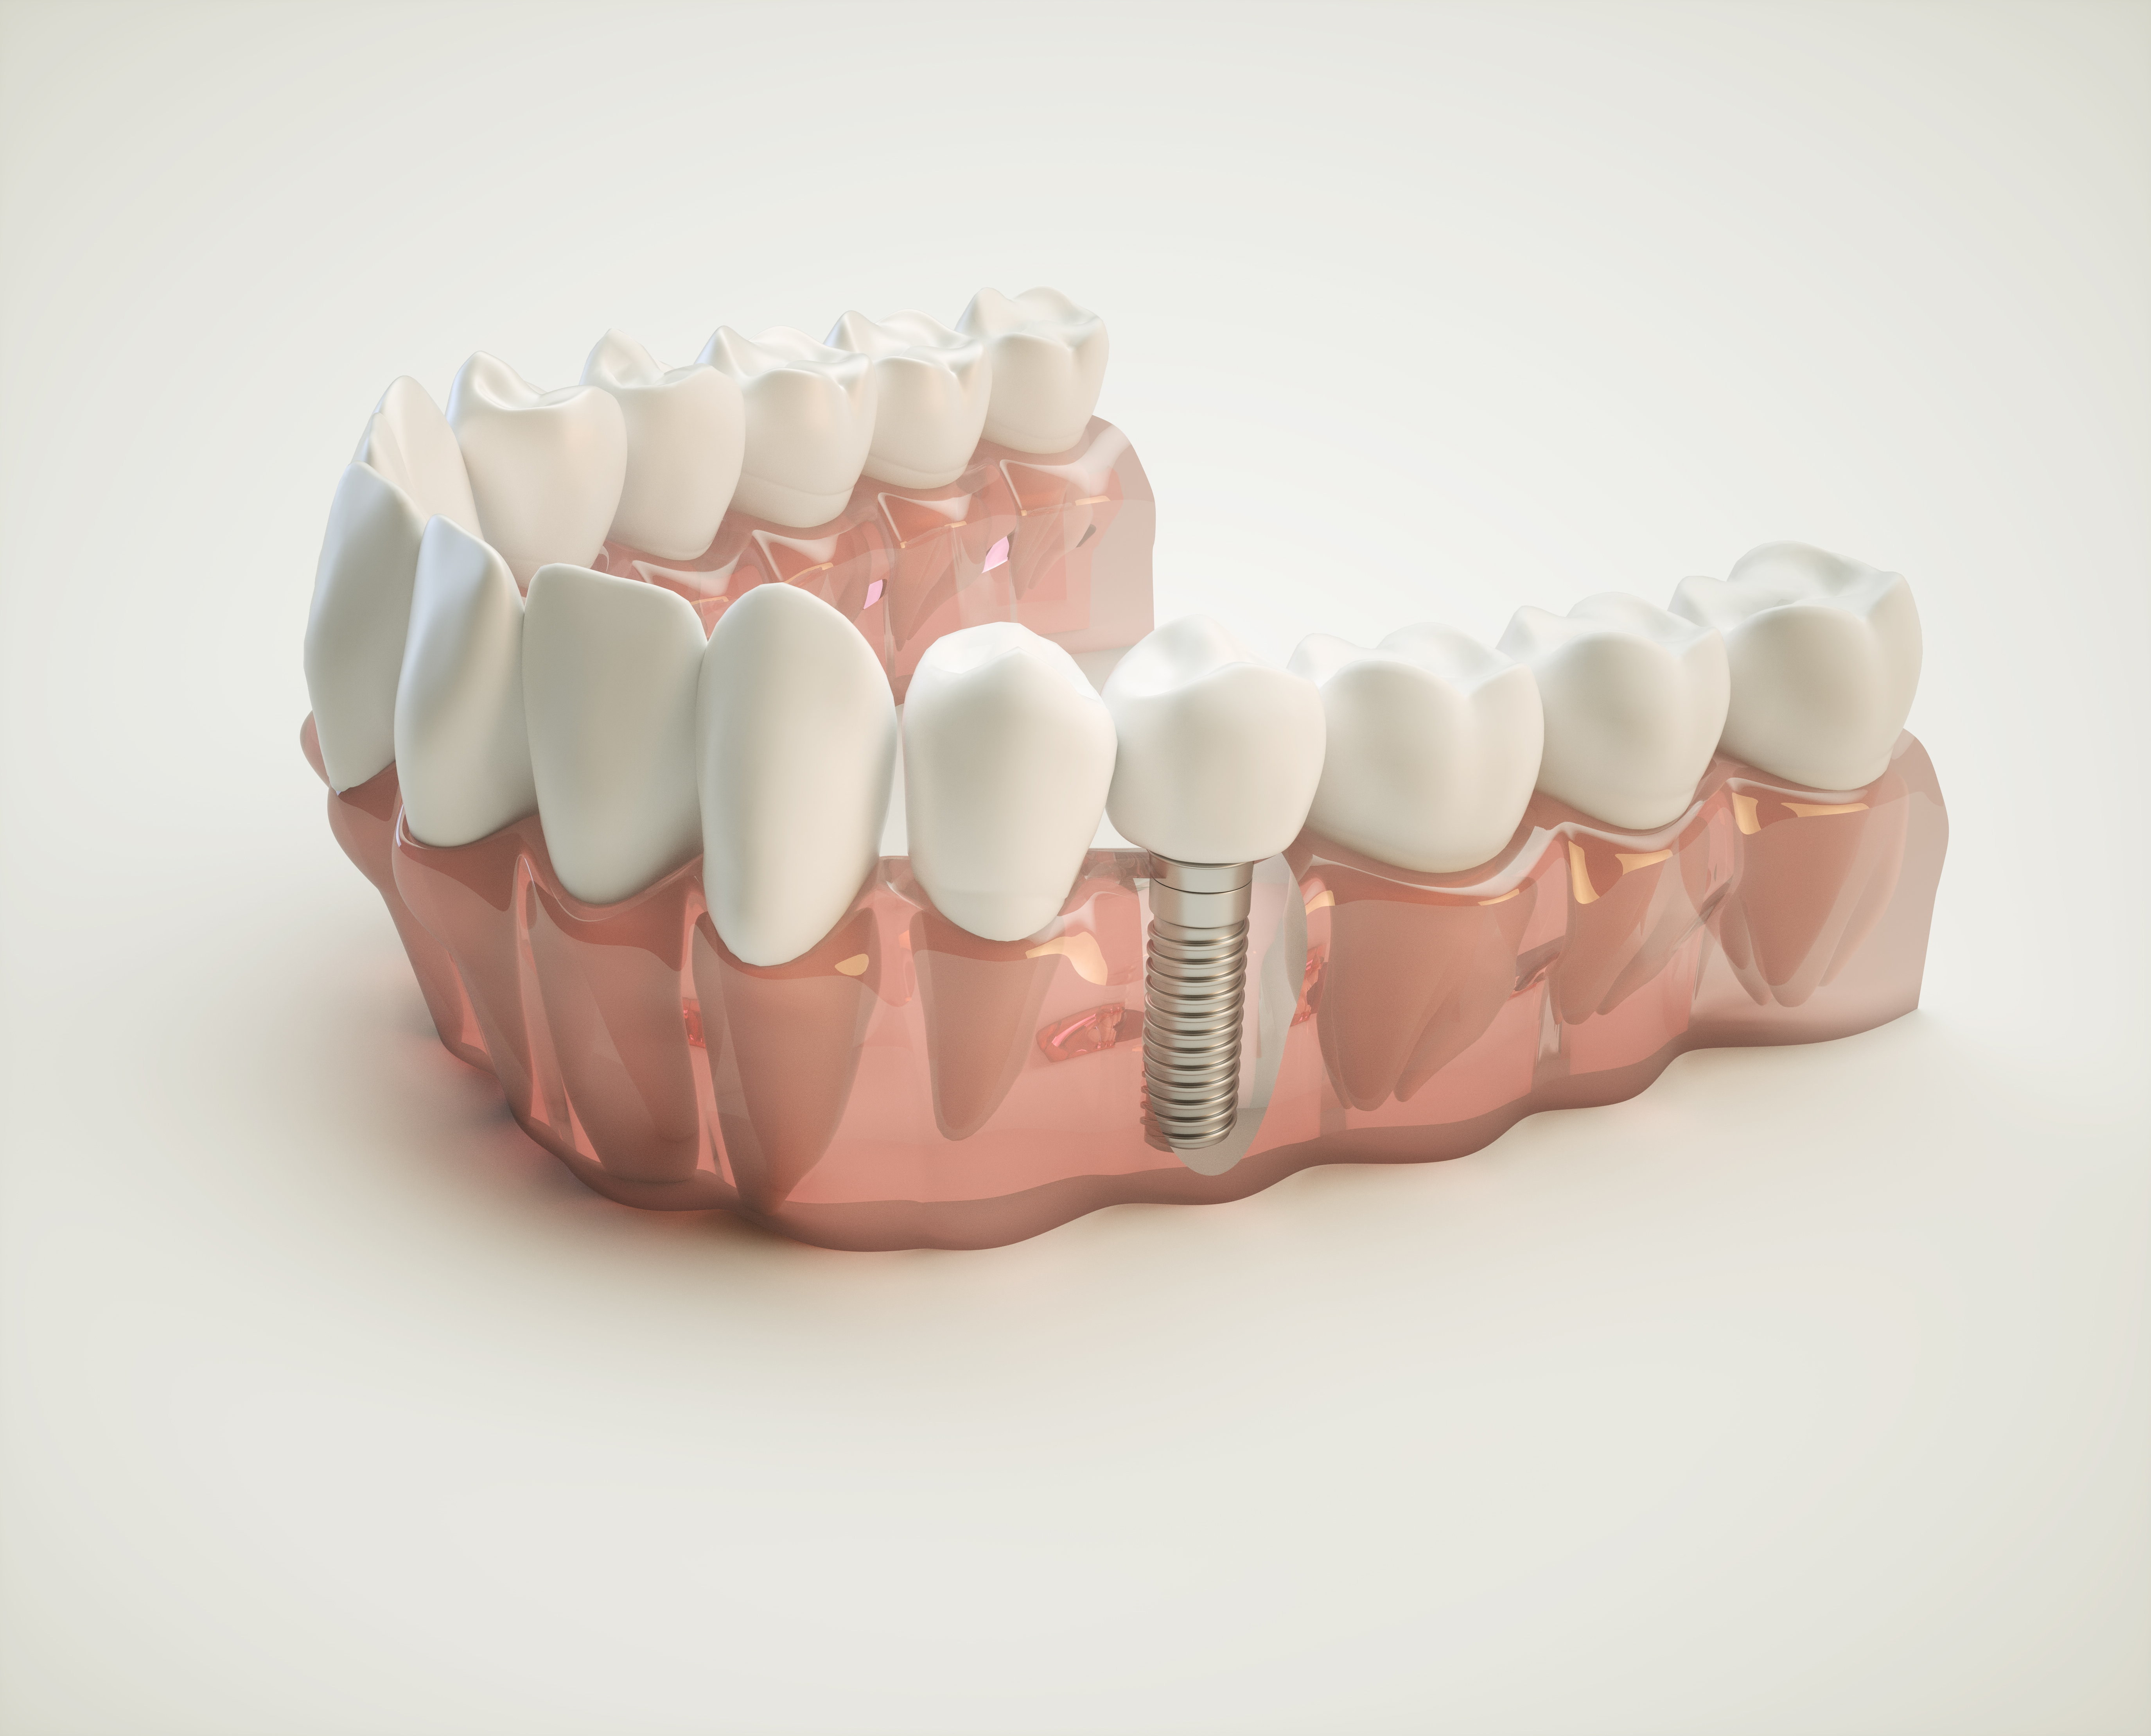 dental-implant-model